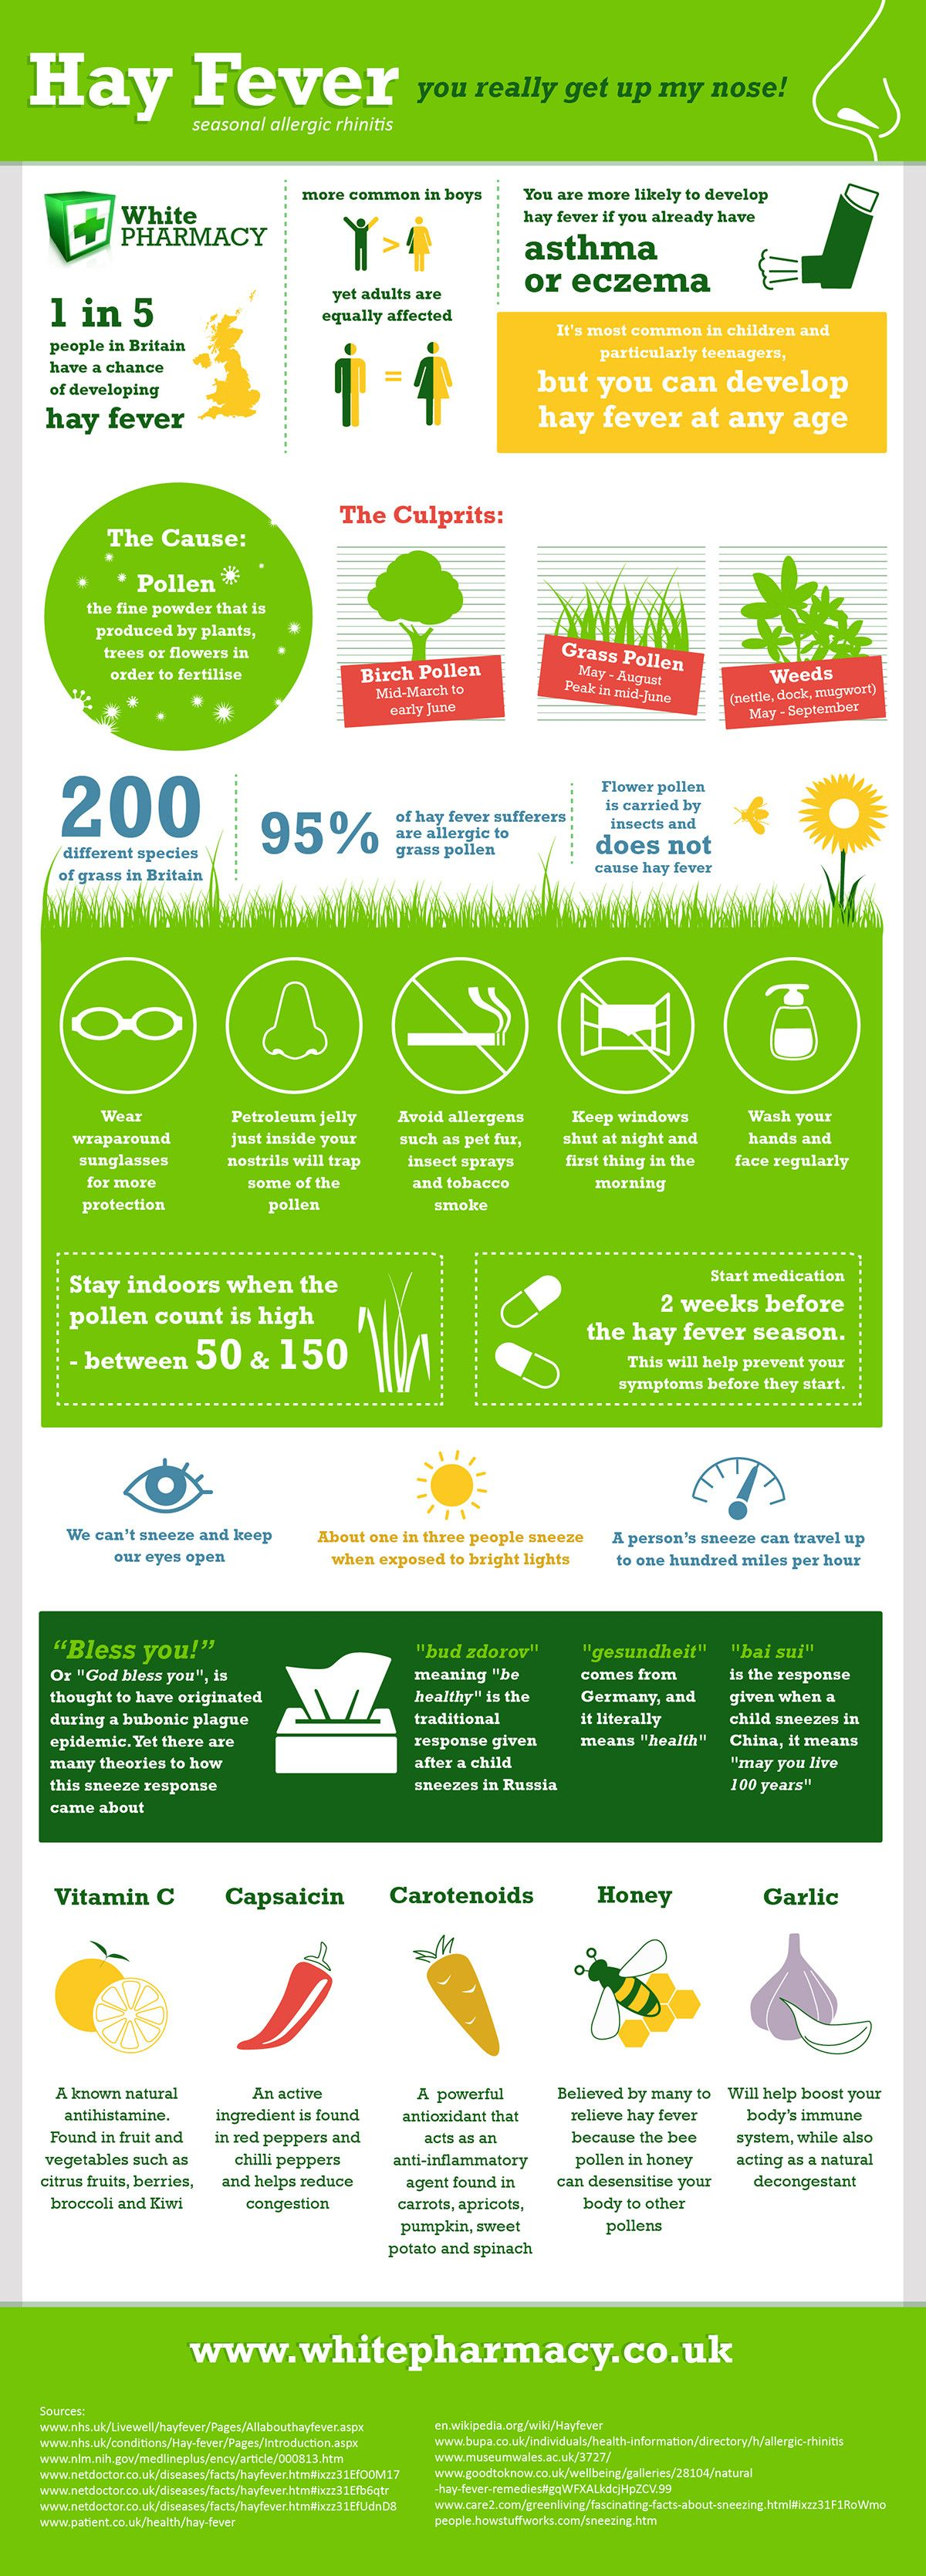 Hay Fever You Really Get Up My Nose Infographic Hay Fever Hayfever Remedies Infographic Health